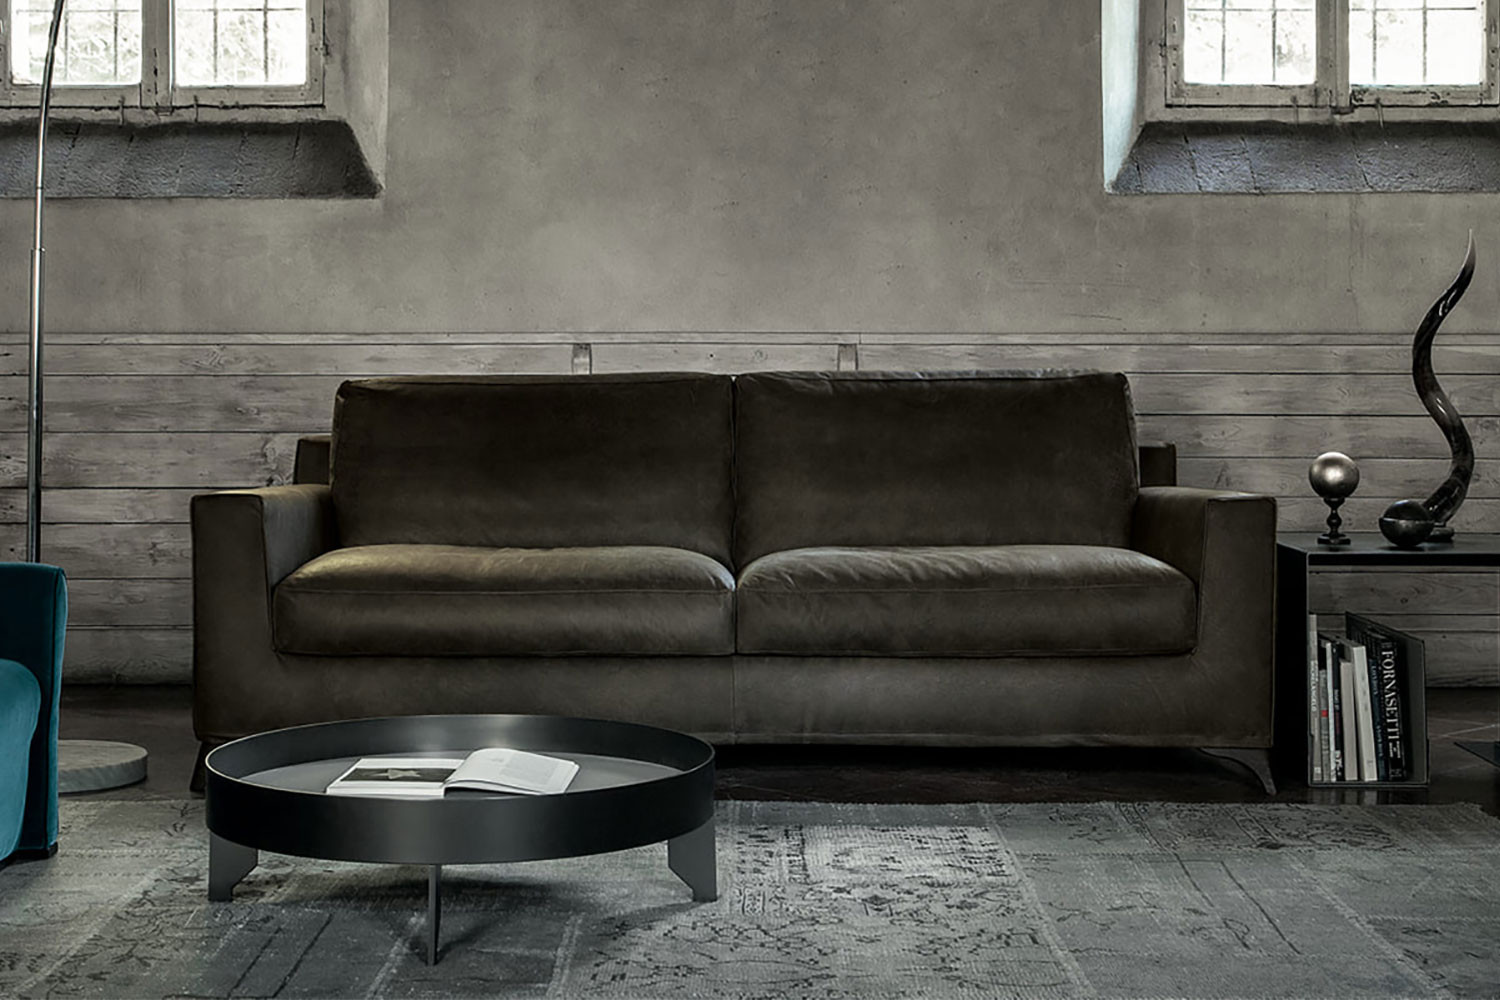 Modern square arm sofa with a contemporary mid-century flair